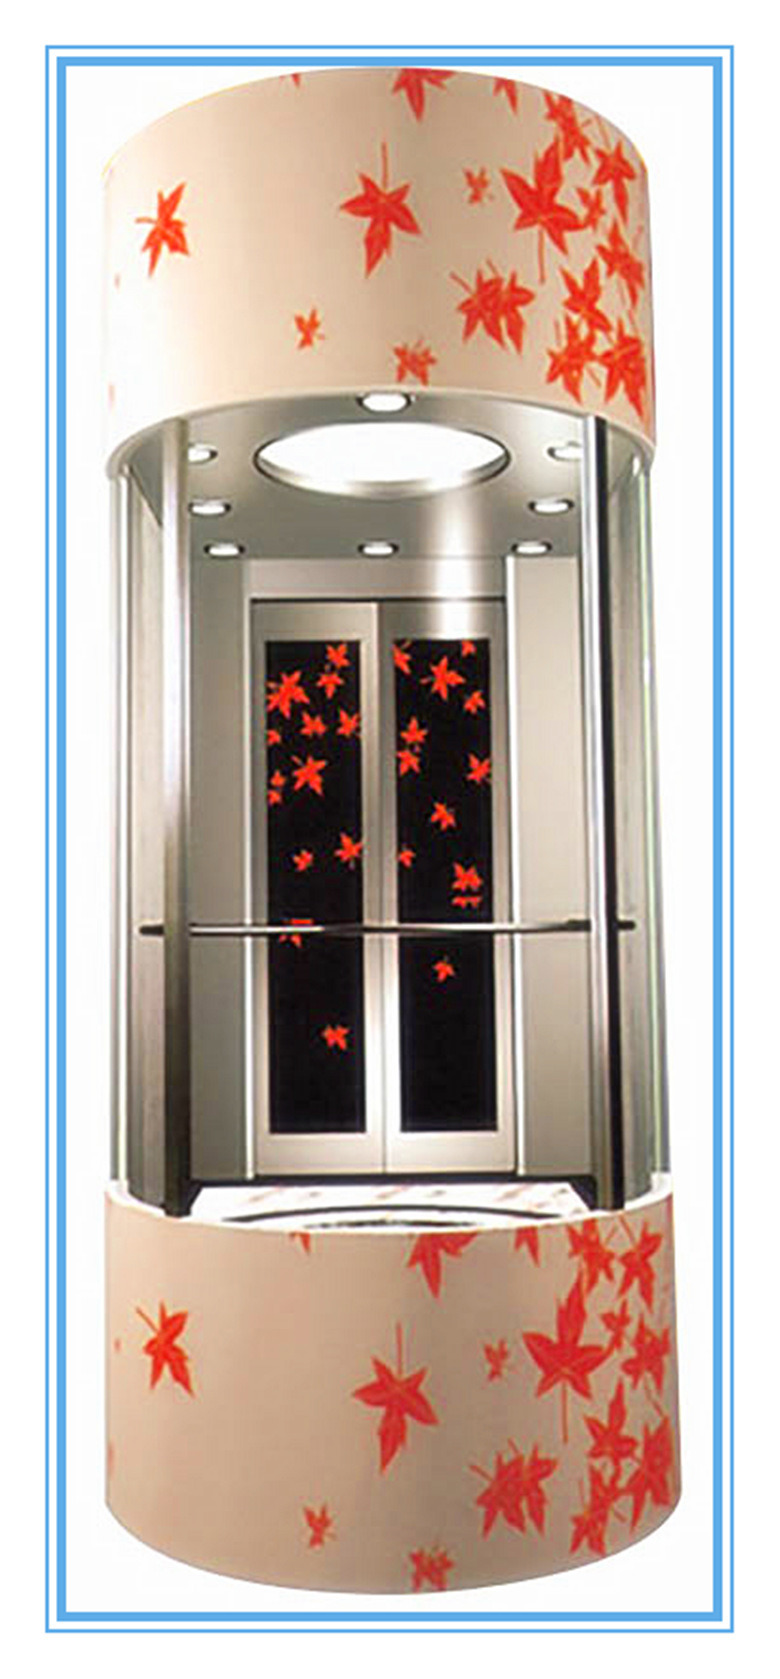 All Kinds of Lift Including Passenger/Goods Cargo/Freight/Hospital/Home/Villa/Sightseeing/Dumbwaiter/Observation